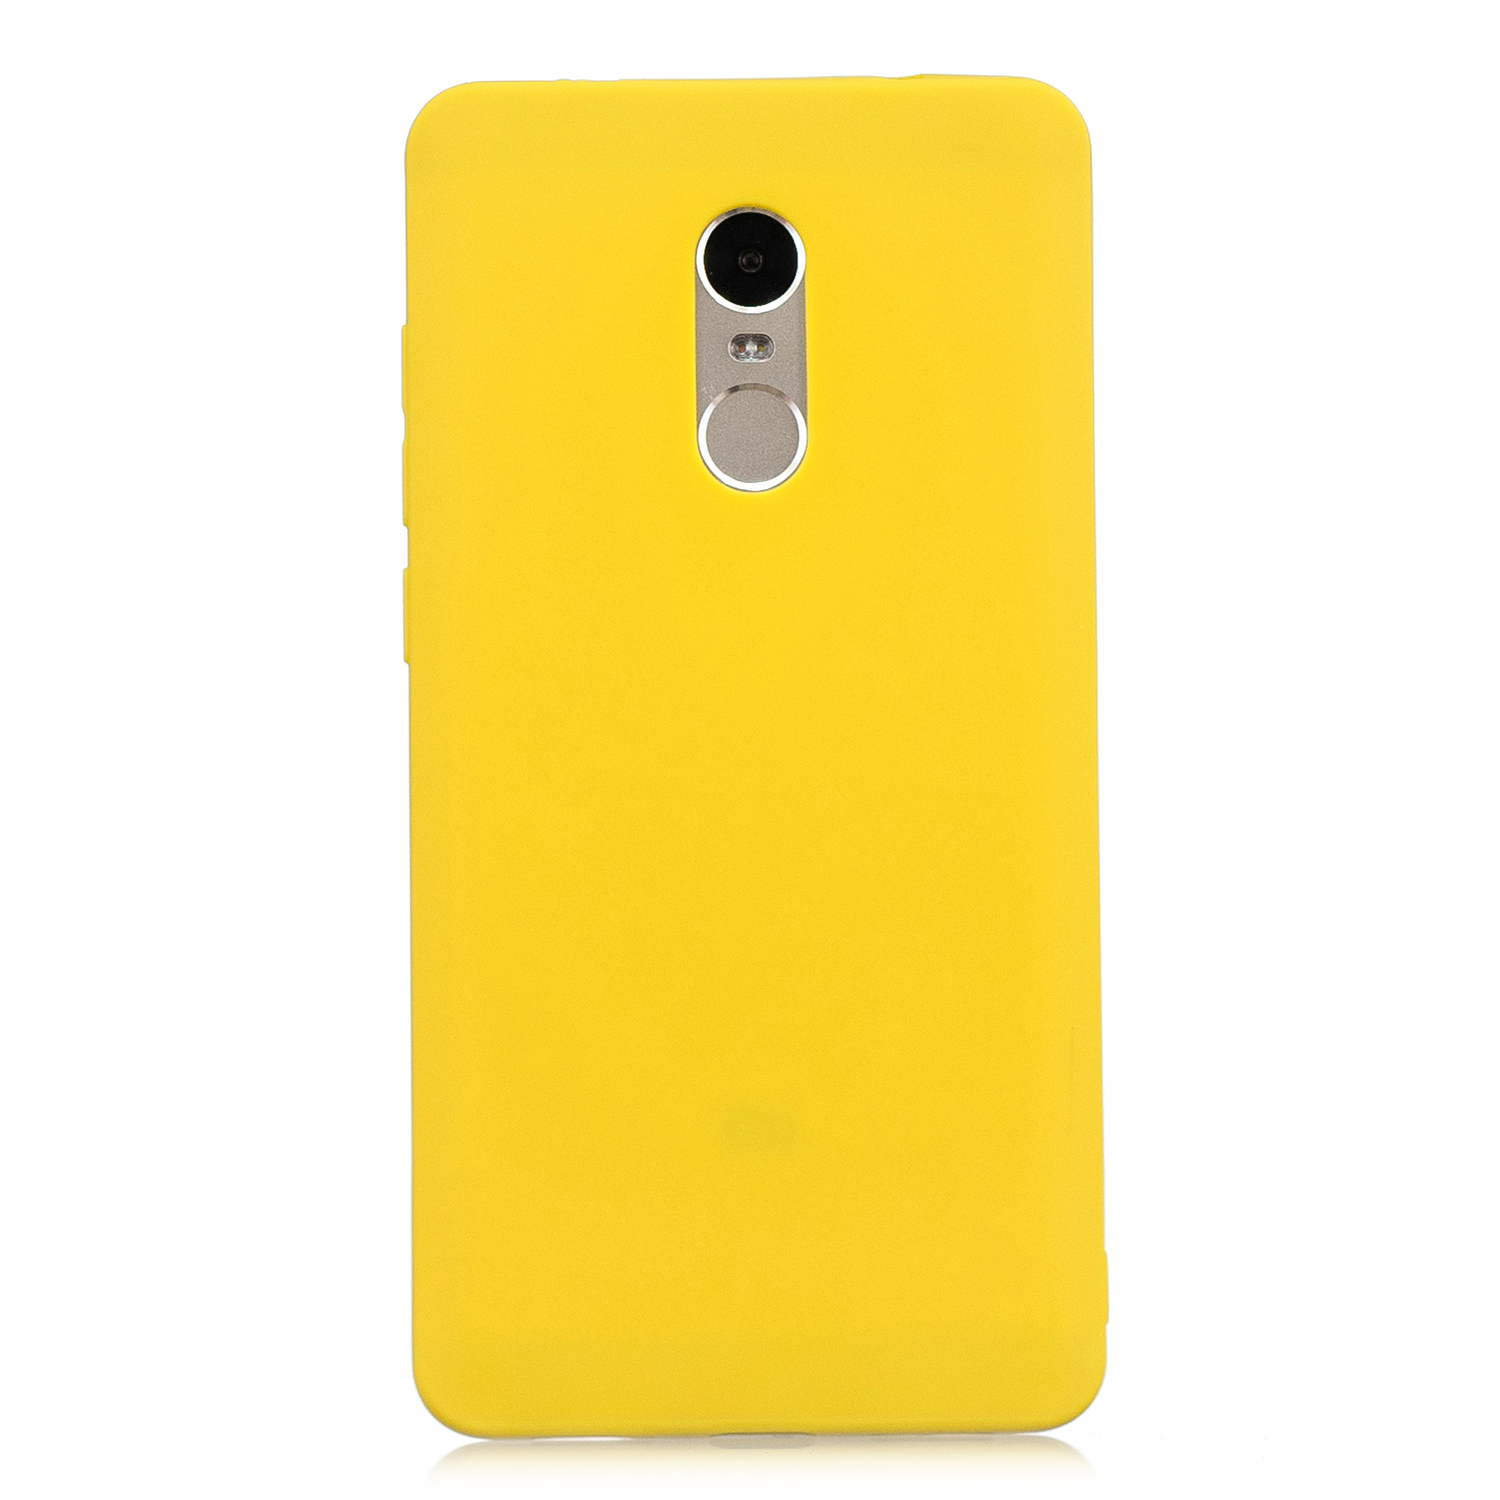 for XIAOMI Redmi NOTE 4X/NOTE 4 Lovely Candy Color Matte TPU Anti-scratch Non-slip Protective Cover Back Case yellow